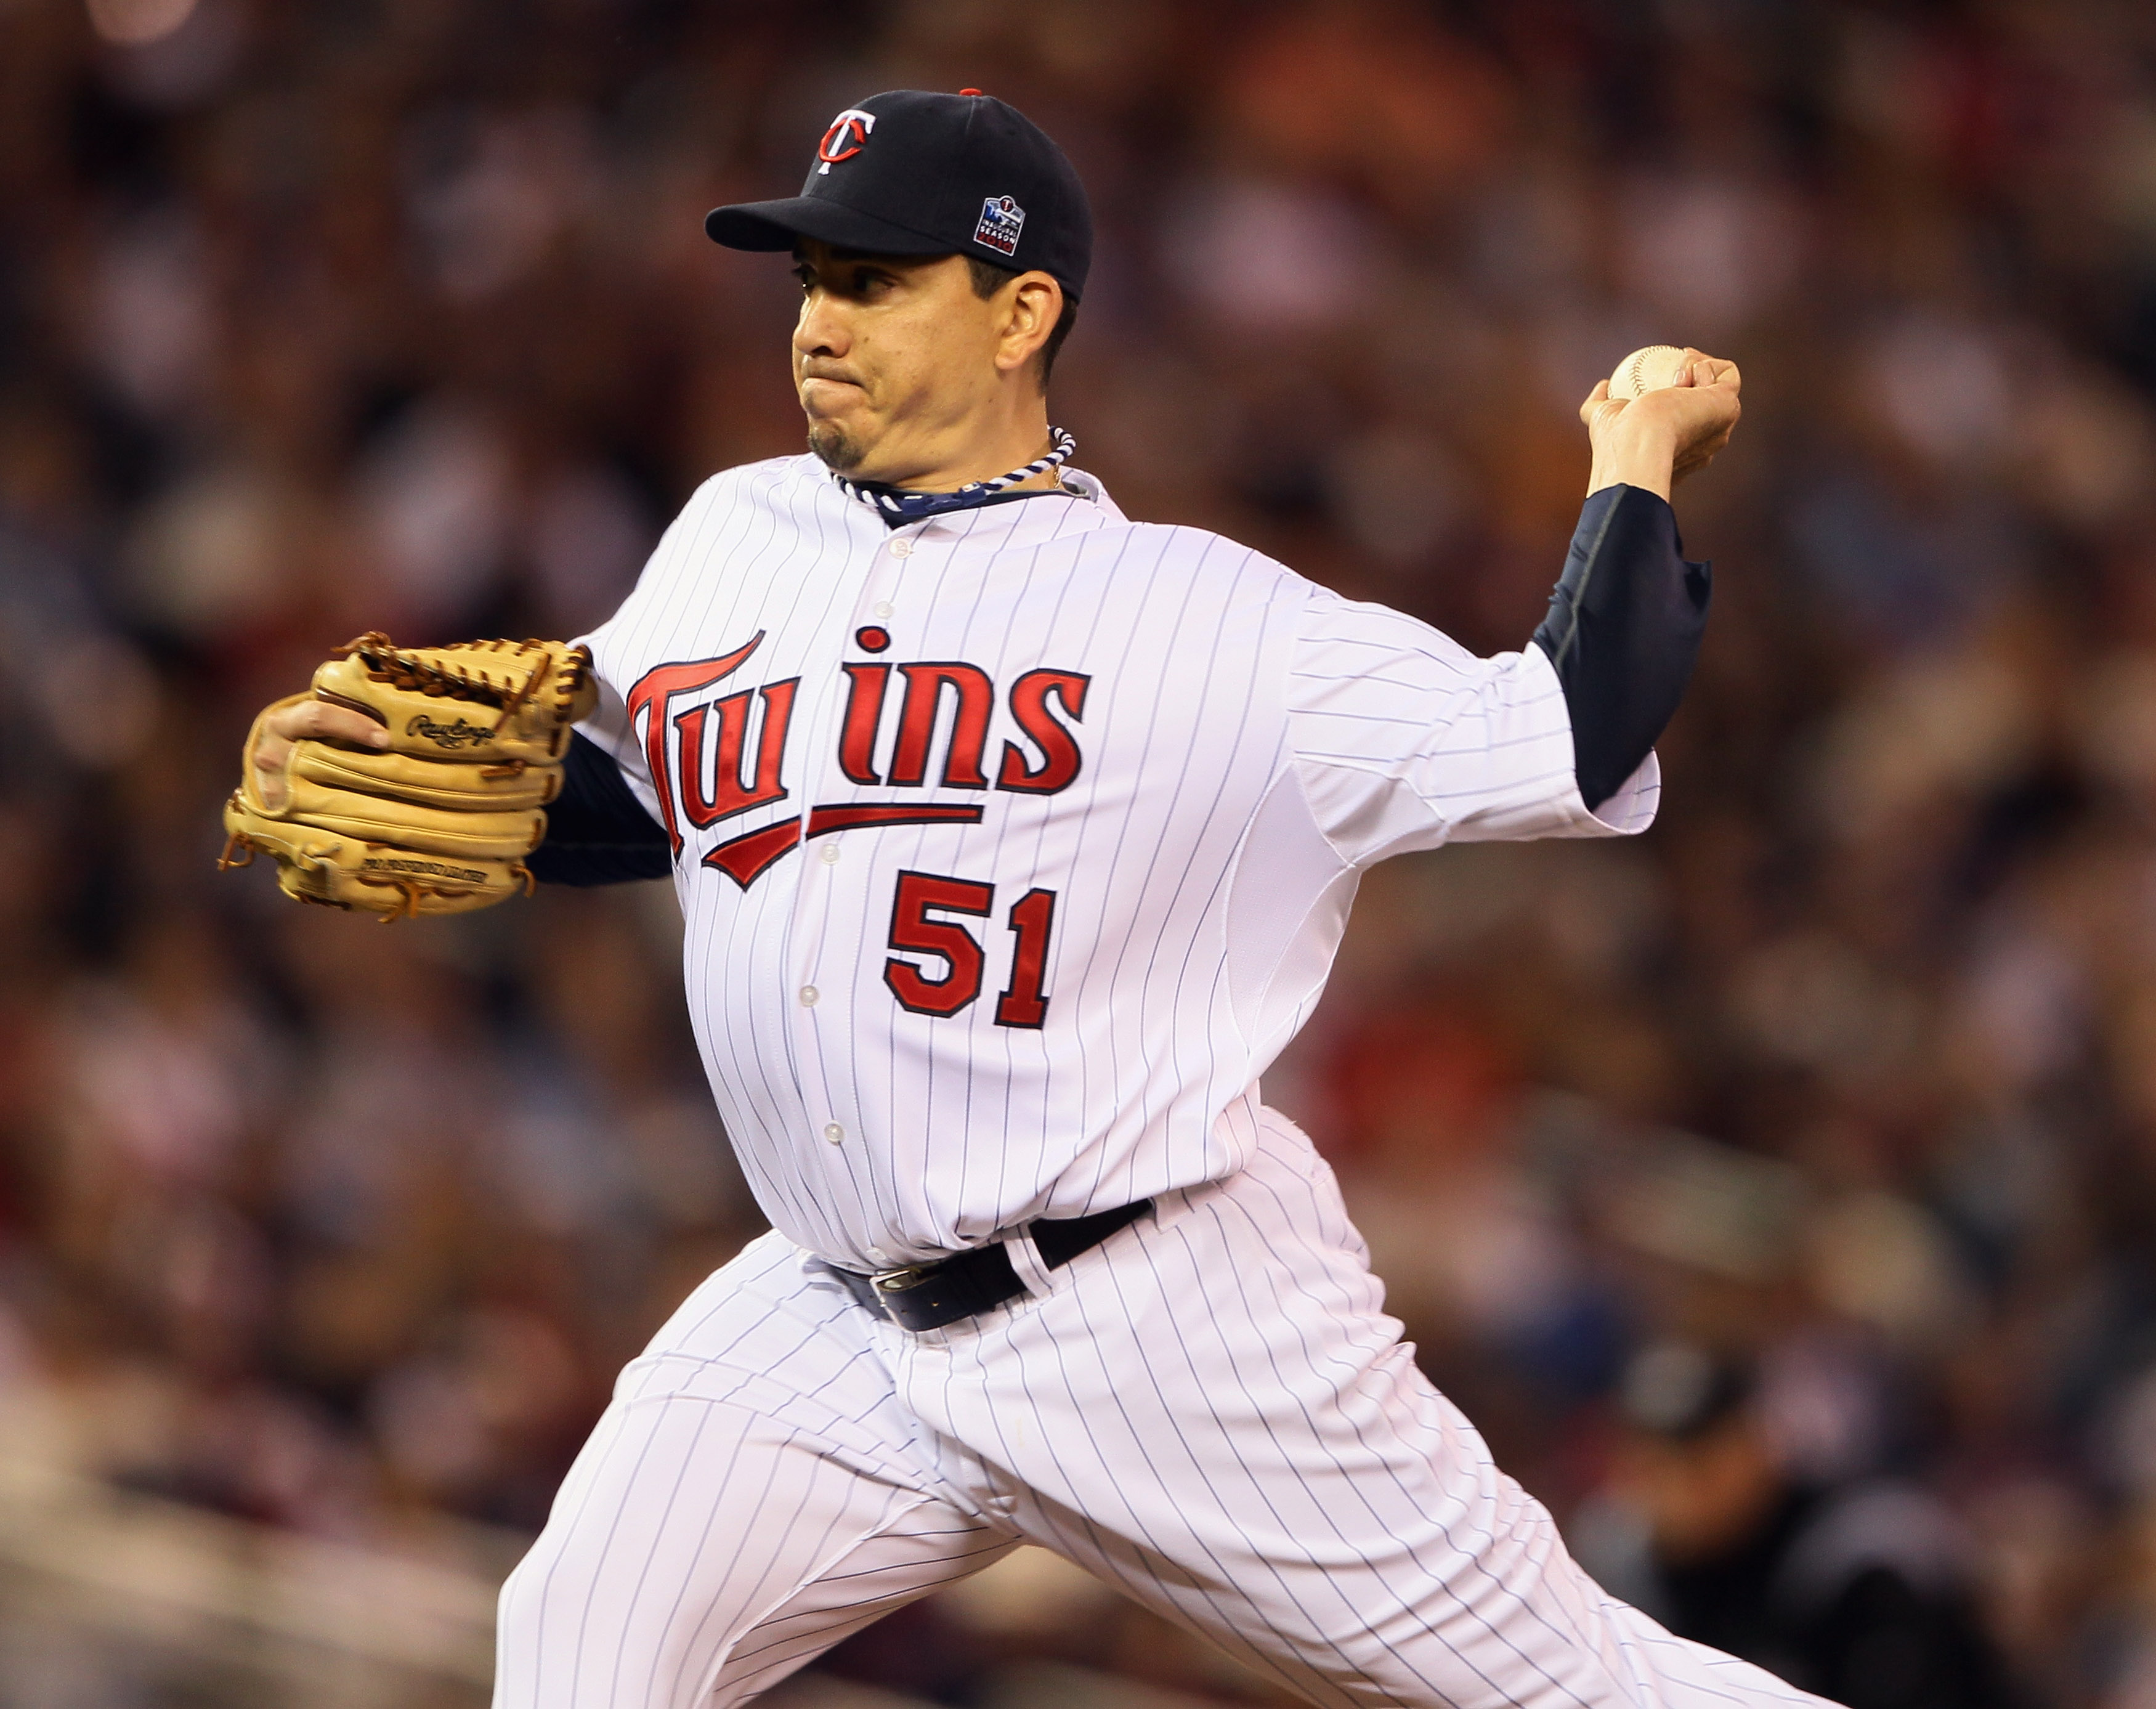 MINNEAPOLIS - OCTOBER 06:  Brian Fuentes #51 of the Minnesota Twins delivers a pitch against the New York Yankees during game one of the ALDS on October 6, 2010 at Target Field in Minneapolis, Minnesota. The Yankees defeated the Twins 6-4.  (Photo by Elsa